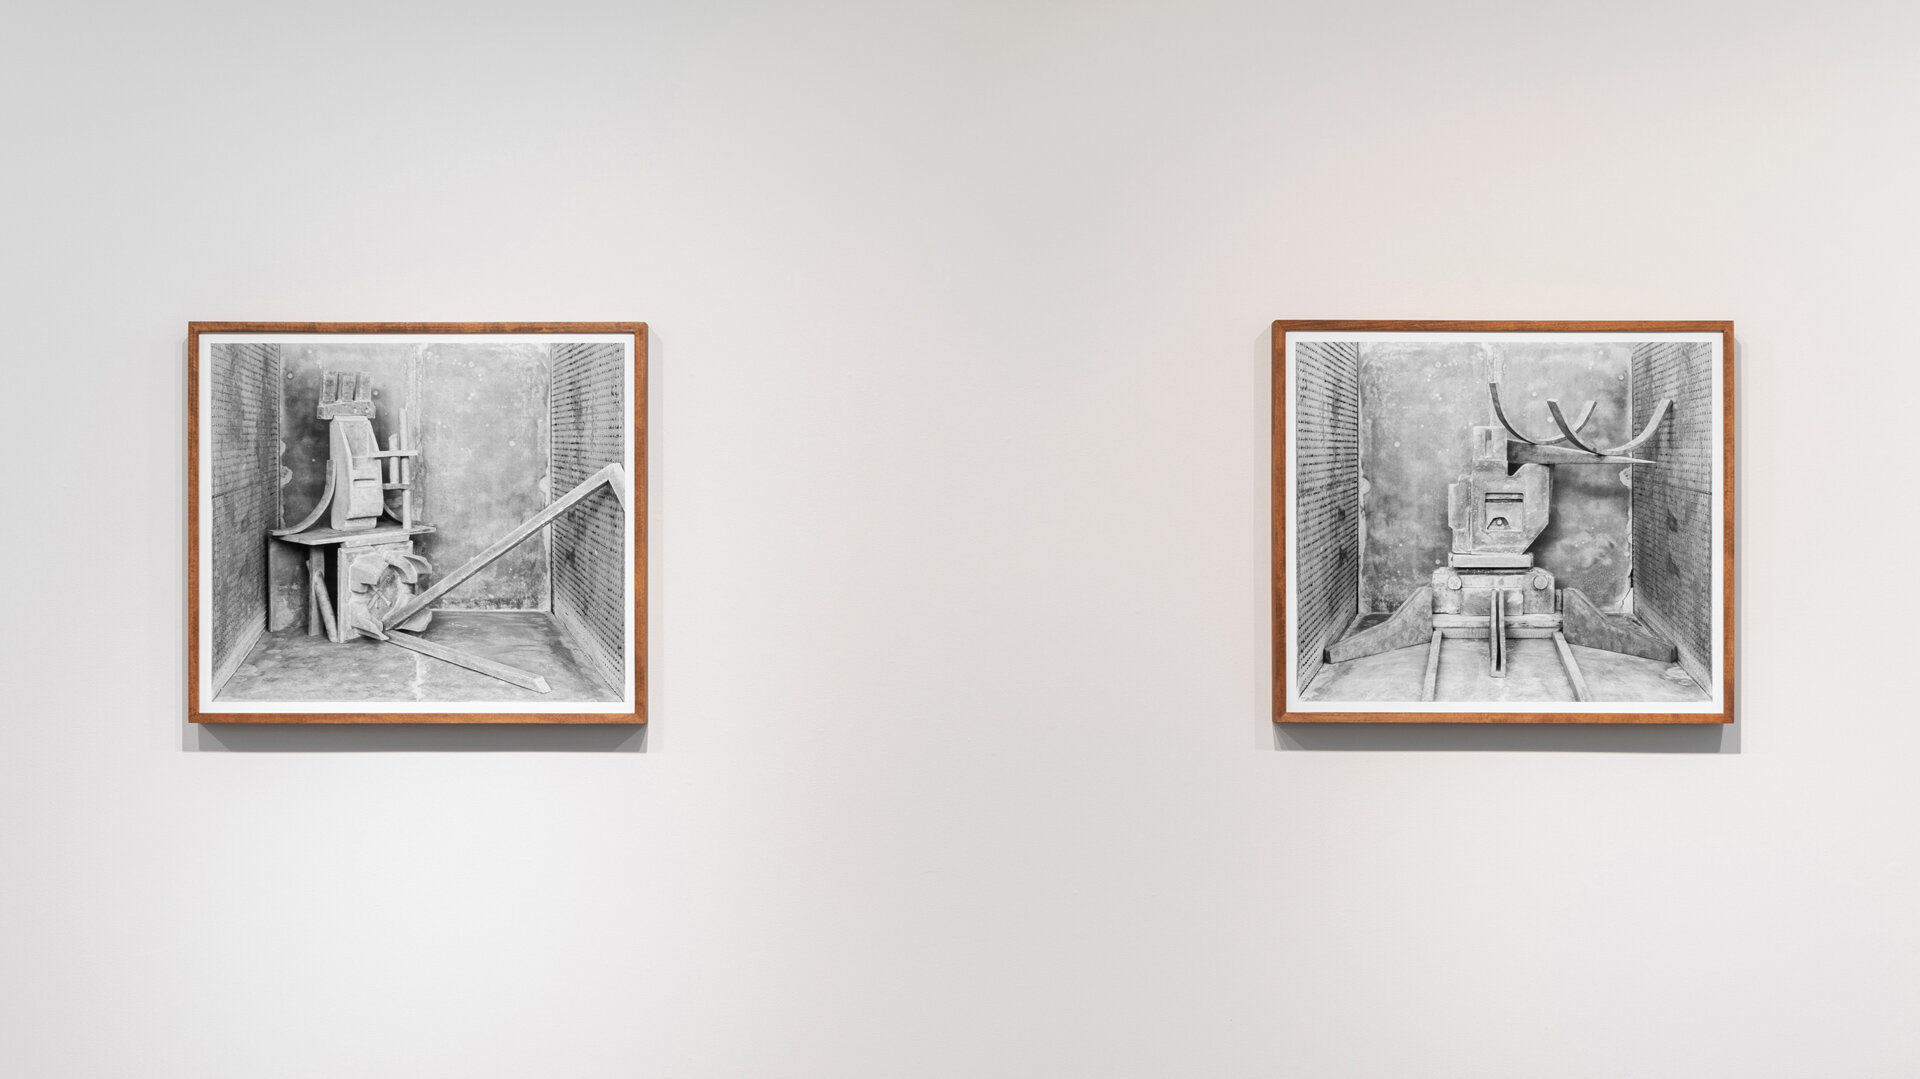 Stature No. 9  and  Stature No. 2  each: 2019, archival pigment print mounted on Sintra, artist frame 29 x 33 inches (framed), edition of 1 plus 1 AP